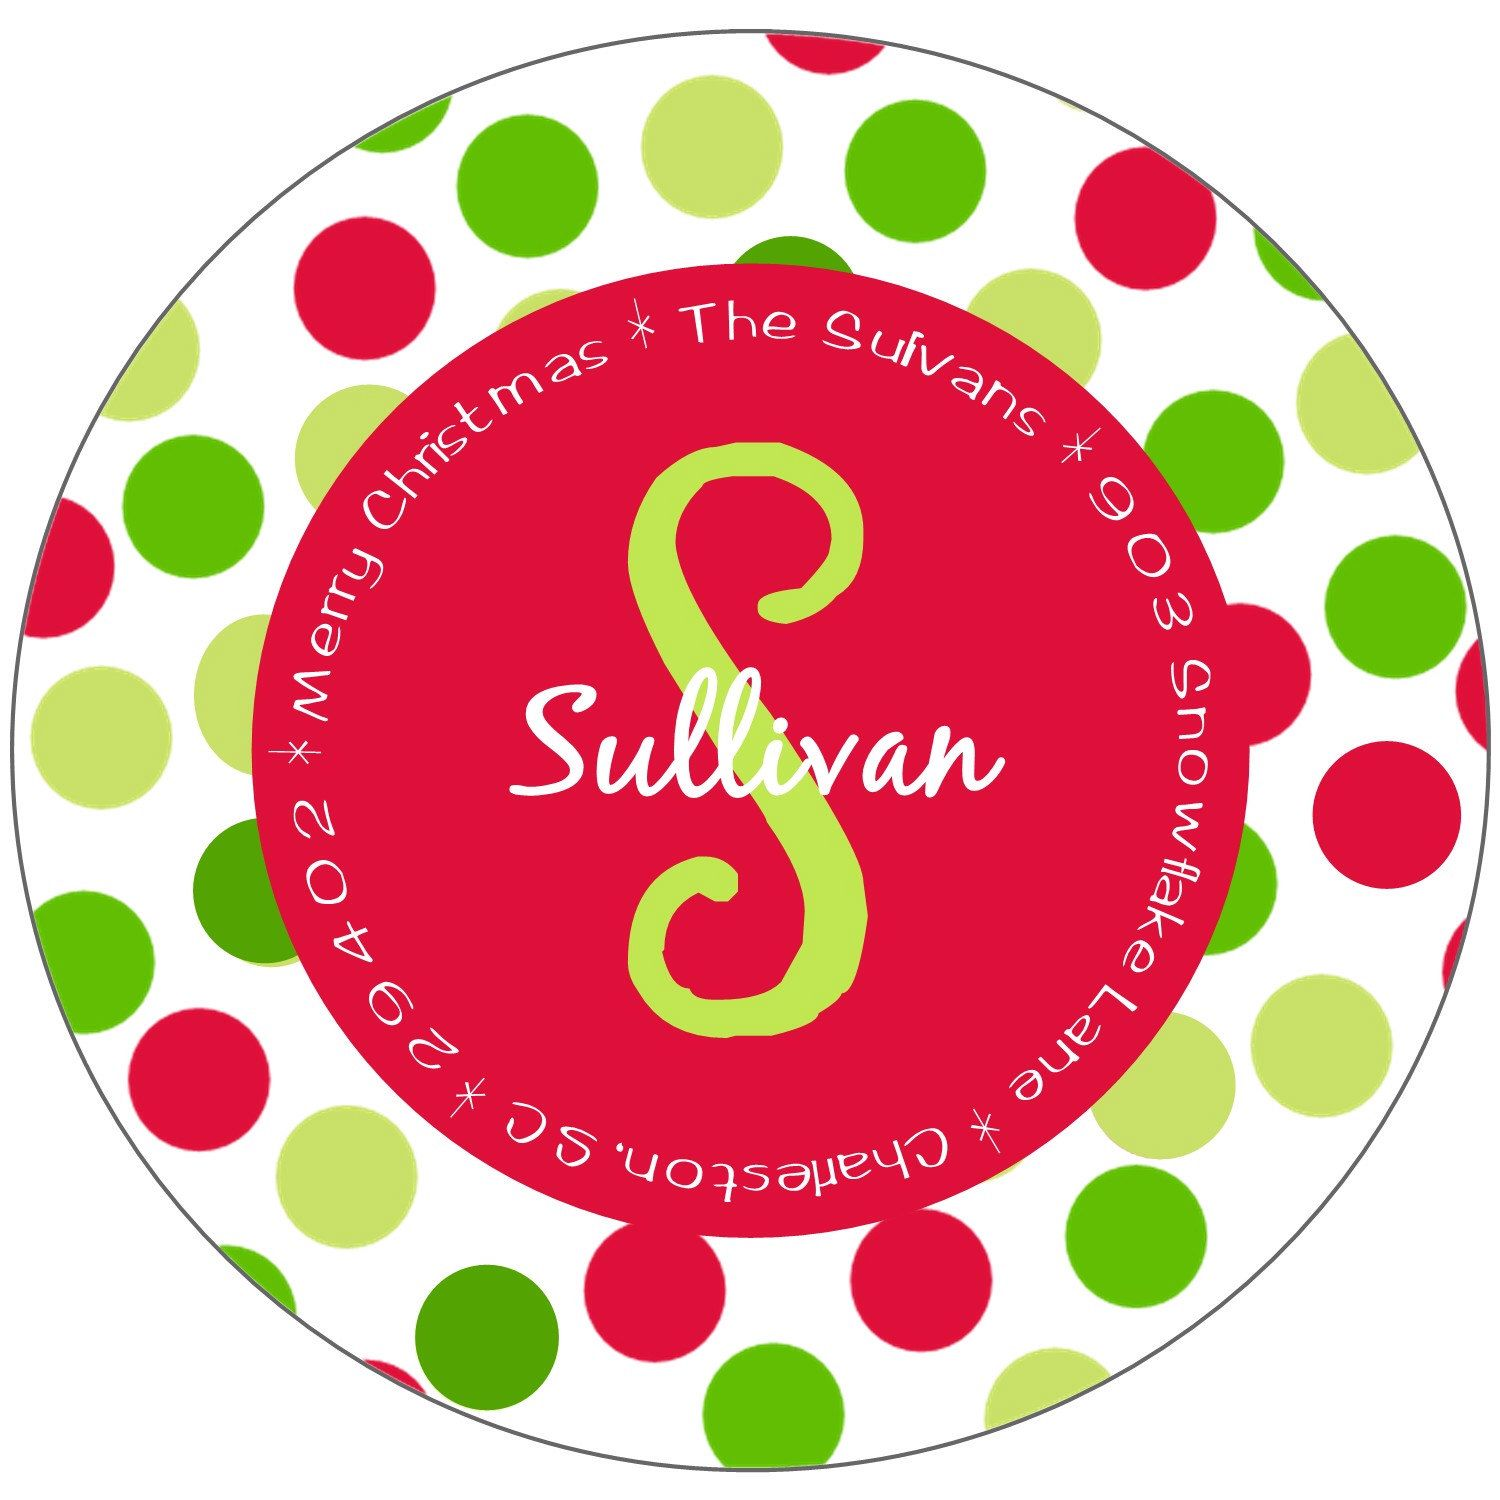 christmas address labels stickers round by stickerchic on etsy https